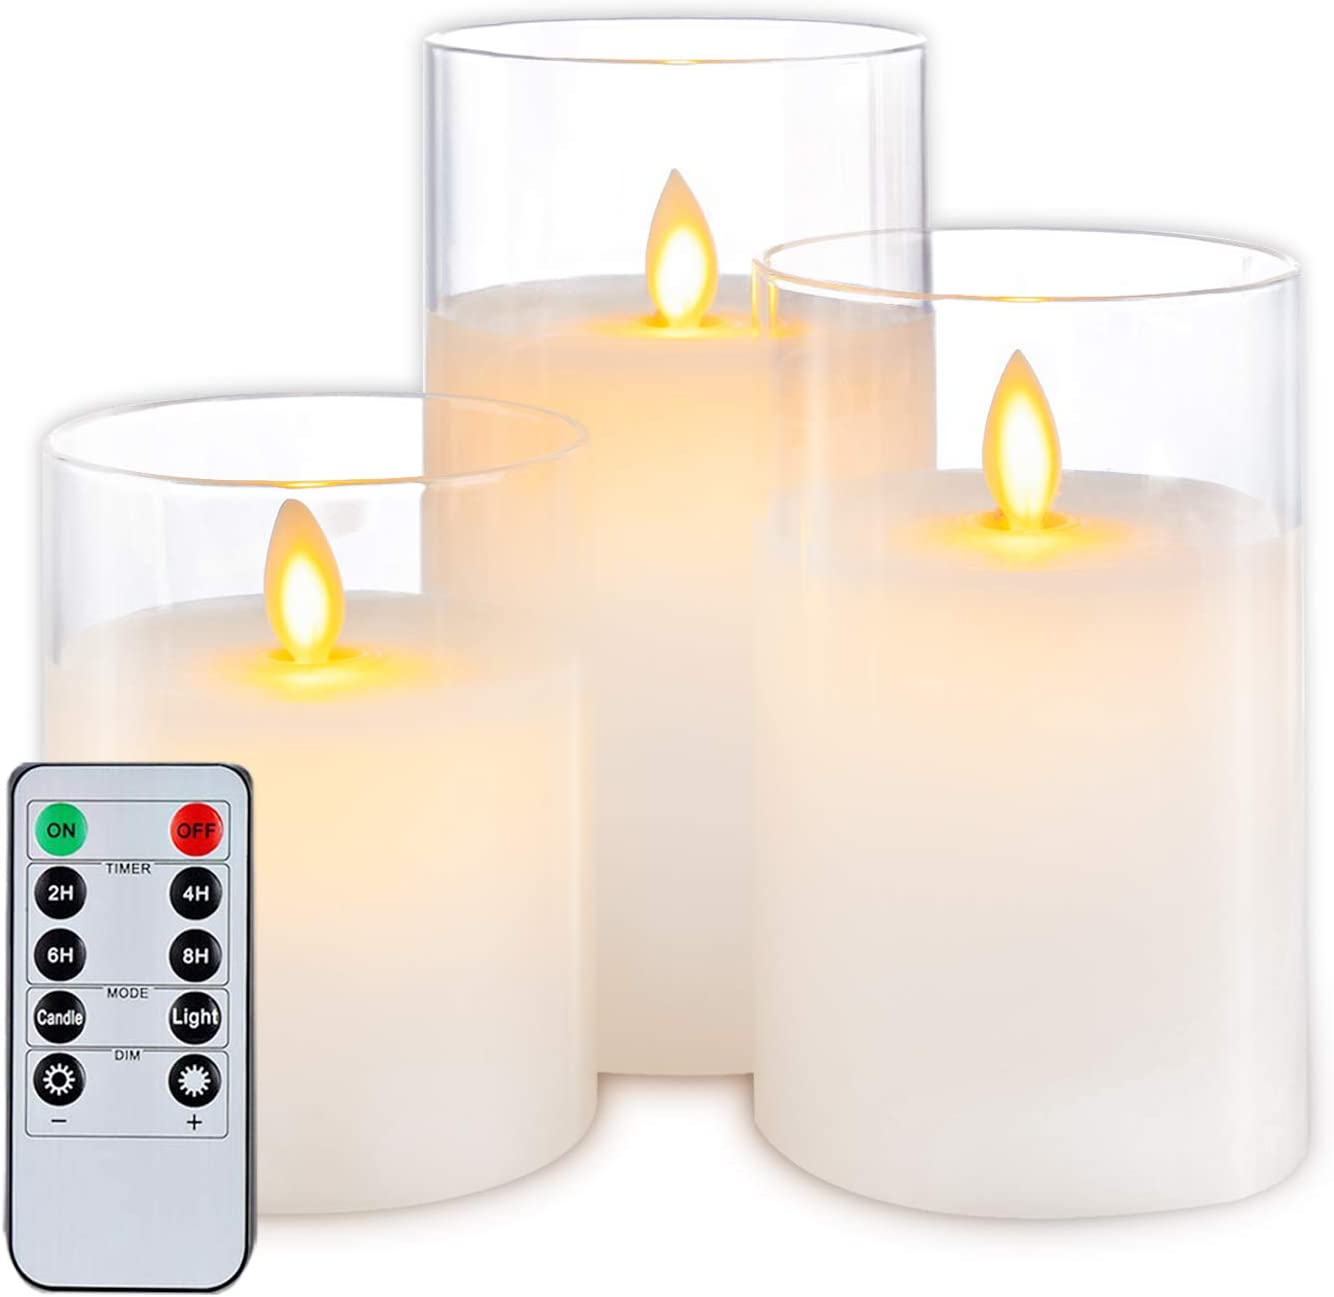 5plots Flickering Flameless Candles, Battery Operated Glass LED Pillar Candles with Remote Control and Timer, Wax, Set of 3 Pure White